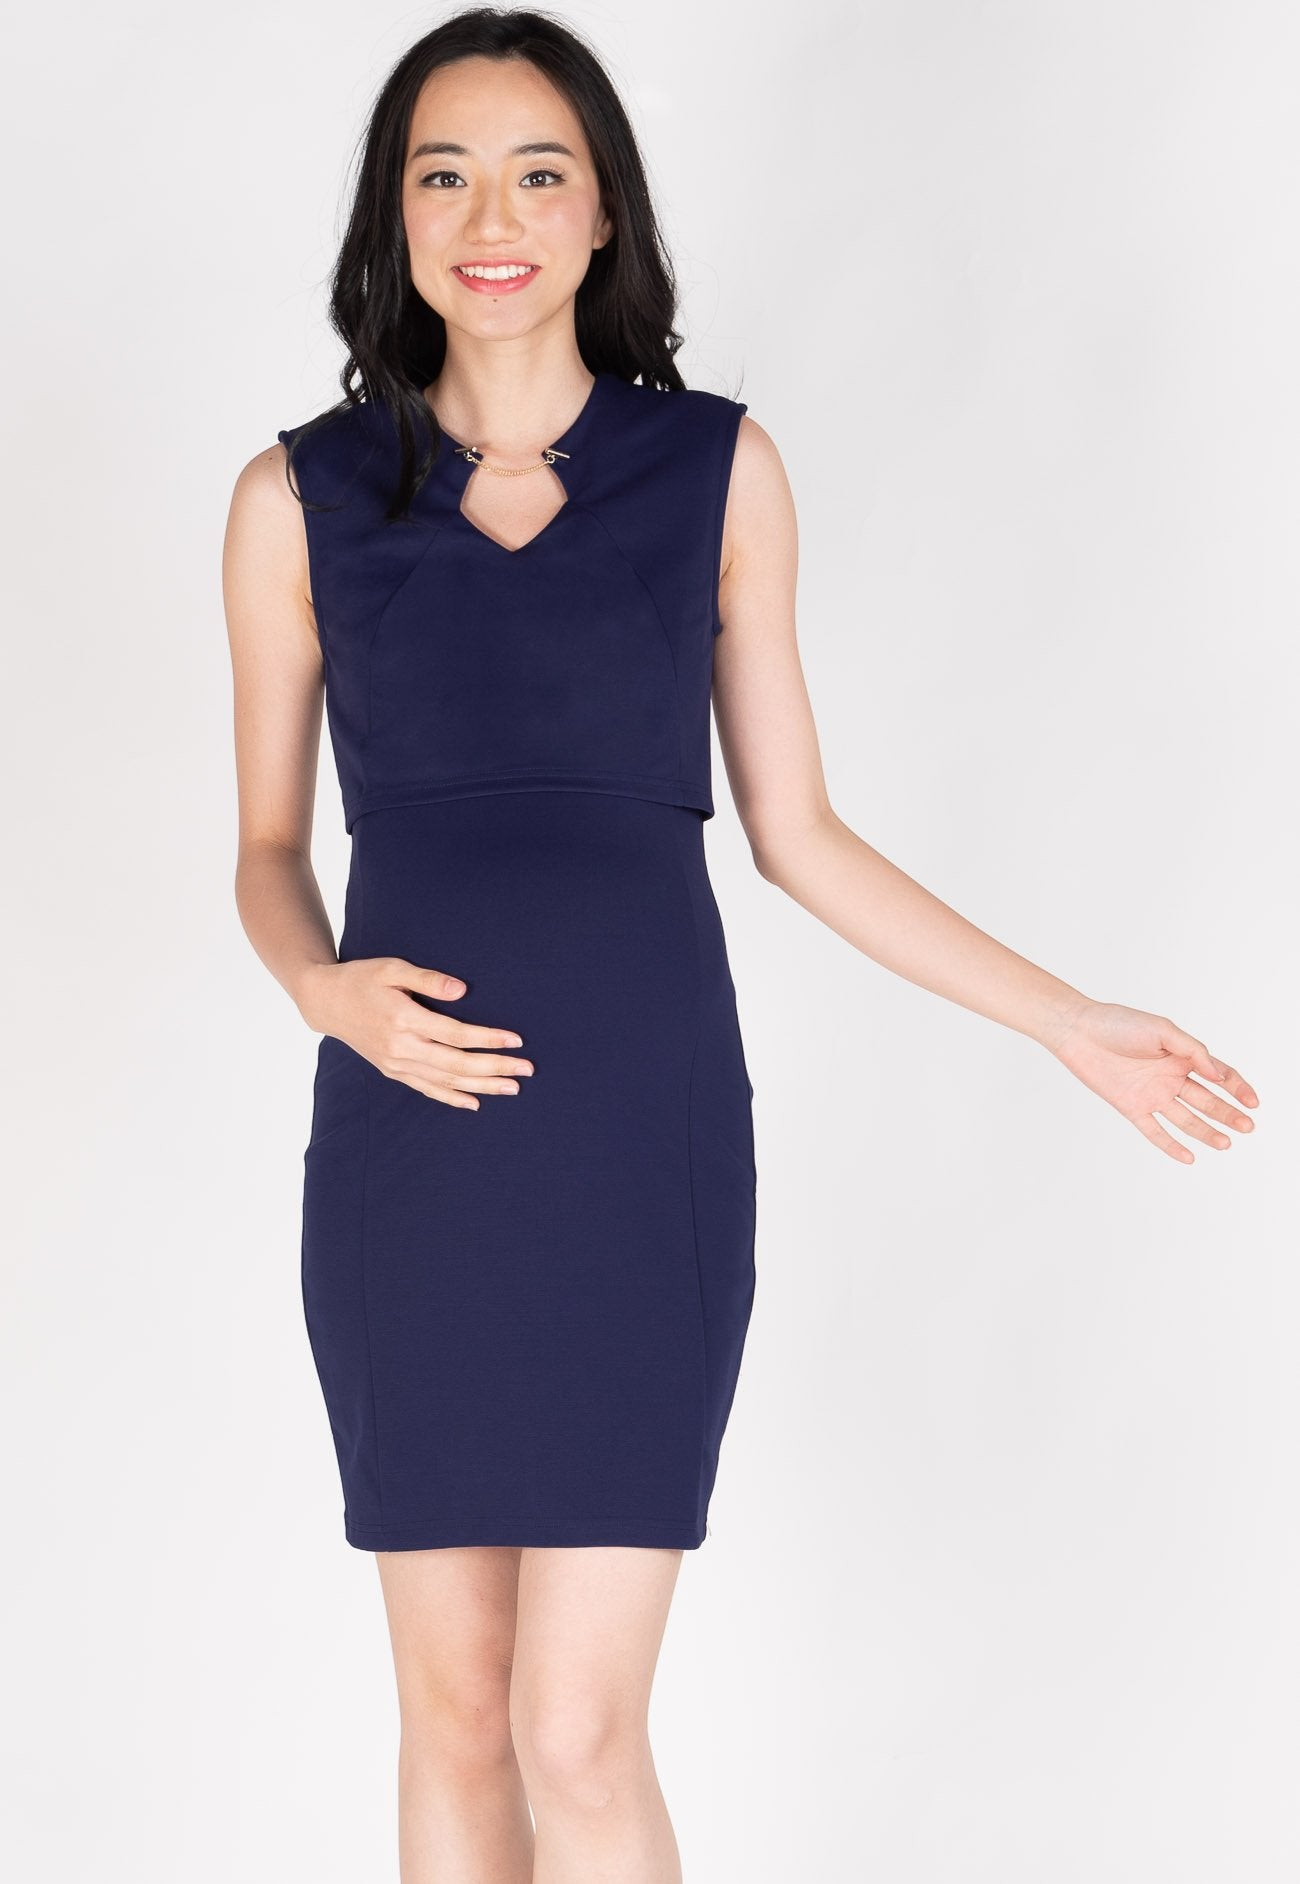 f5db1ceaf6e89 ... Belva Chain Nursing Dress in Navy by Jump Eat Cry - Maternity and nursing  wear ...